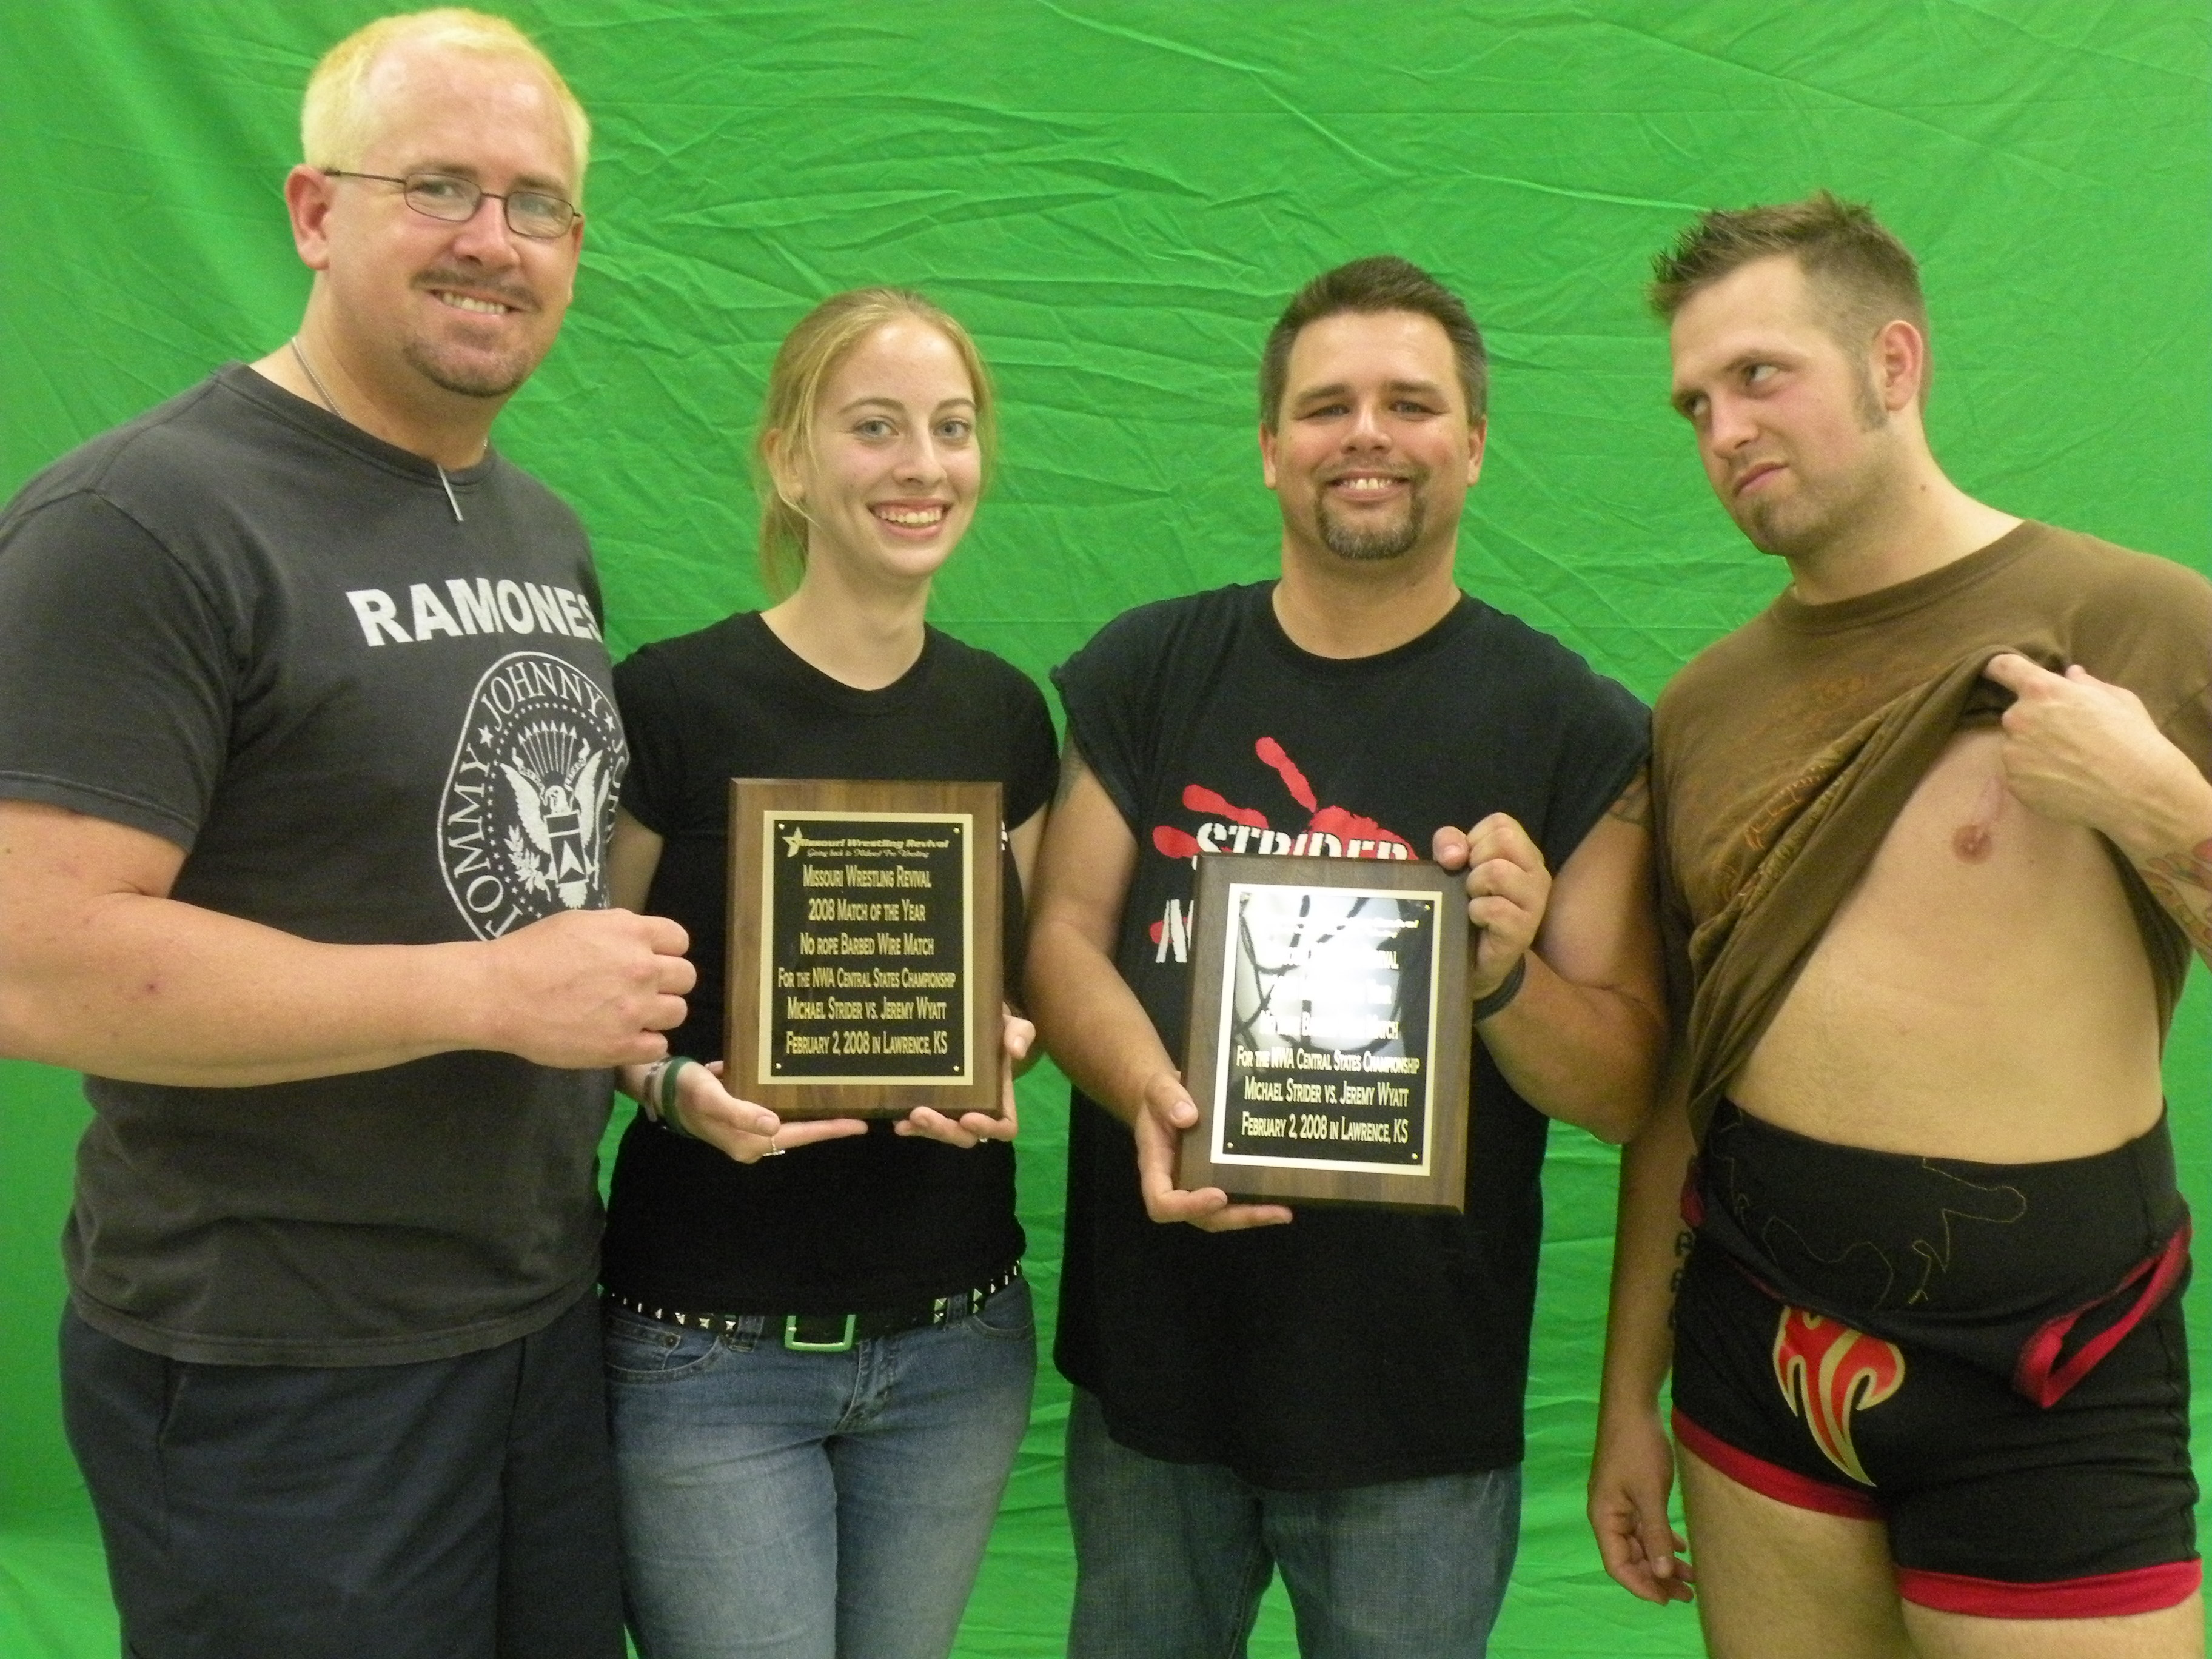 """A reunion between two warriors of the sport as Michael Strider and Jeremy Wyatt receive their 2008 MWR Match of the Year plaques. Pictured left to right Michael Strider, MWR Columnist Kari Williams, MWR Owner Brian Kelley, Jeremy """"The Belt Collector"""" Wyatt."""